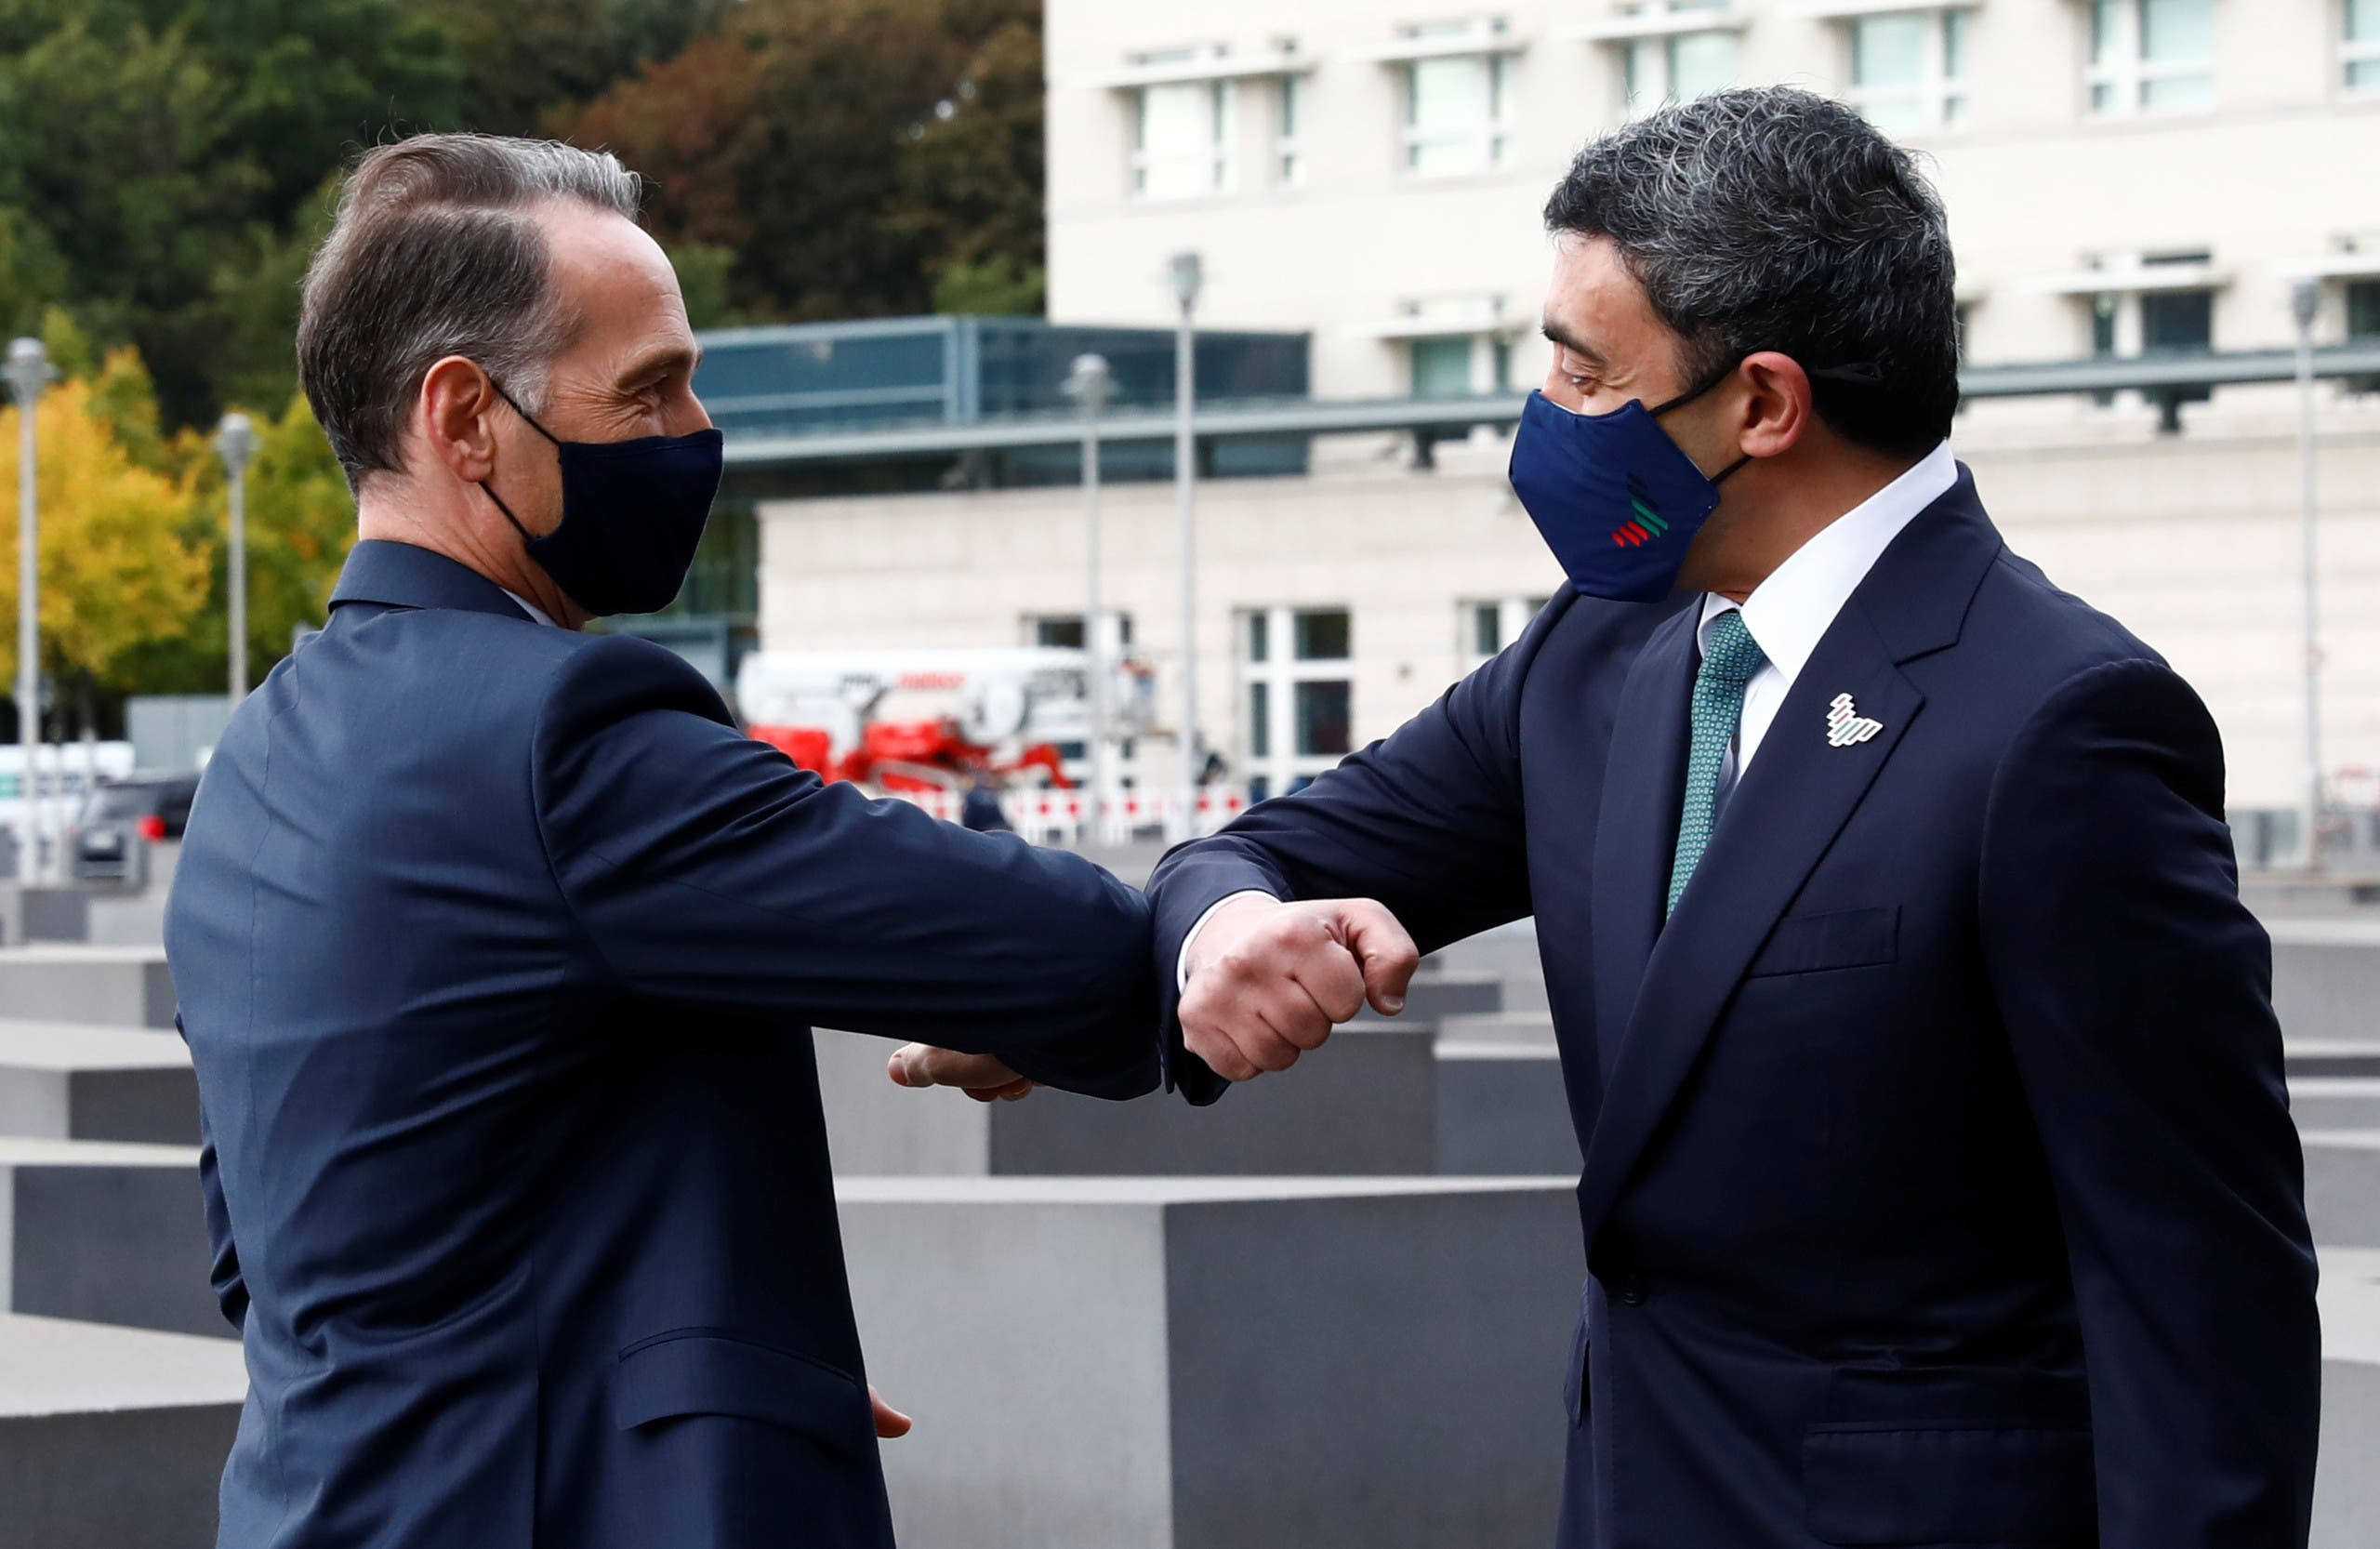 UAE Foreign Minister Sheikh Abdullah bin Zayed al-Nahyan greets German Foreign Minister Heiko Maas as he and his Israeli counterpart Gabi Ashkenazi visit the Holocaust memorial together prior to their historic meeting in Berlin, Germany October 6, 2020. (Reuters)